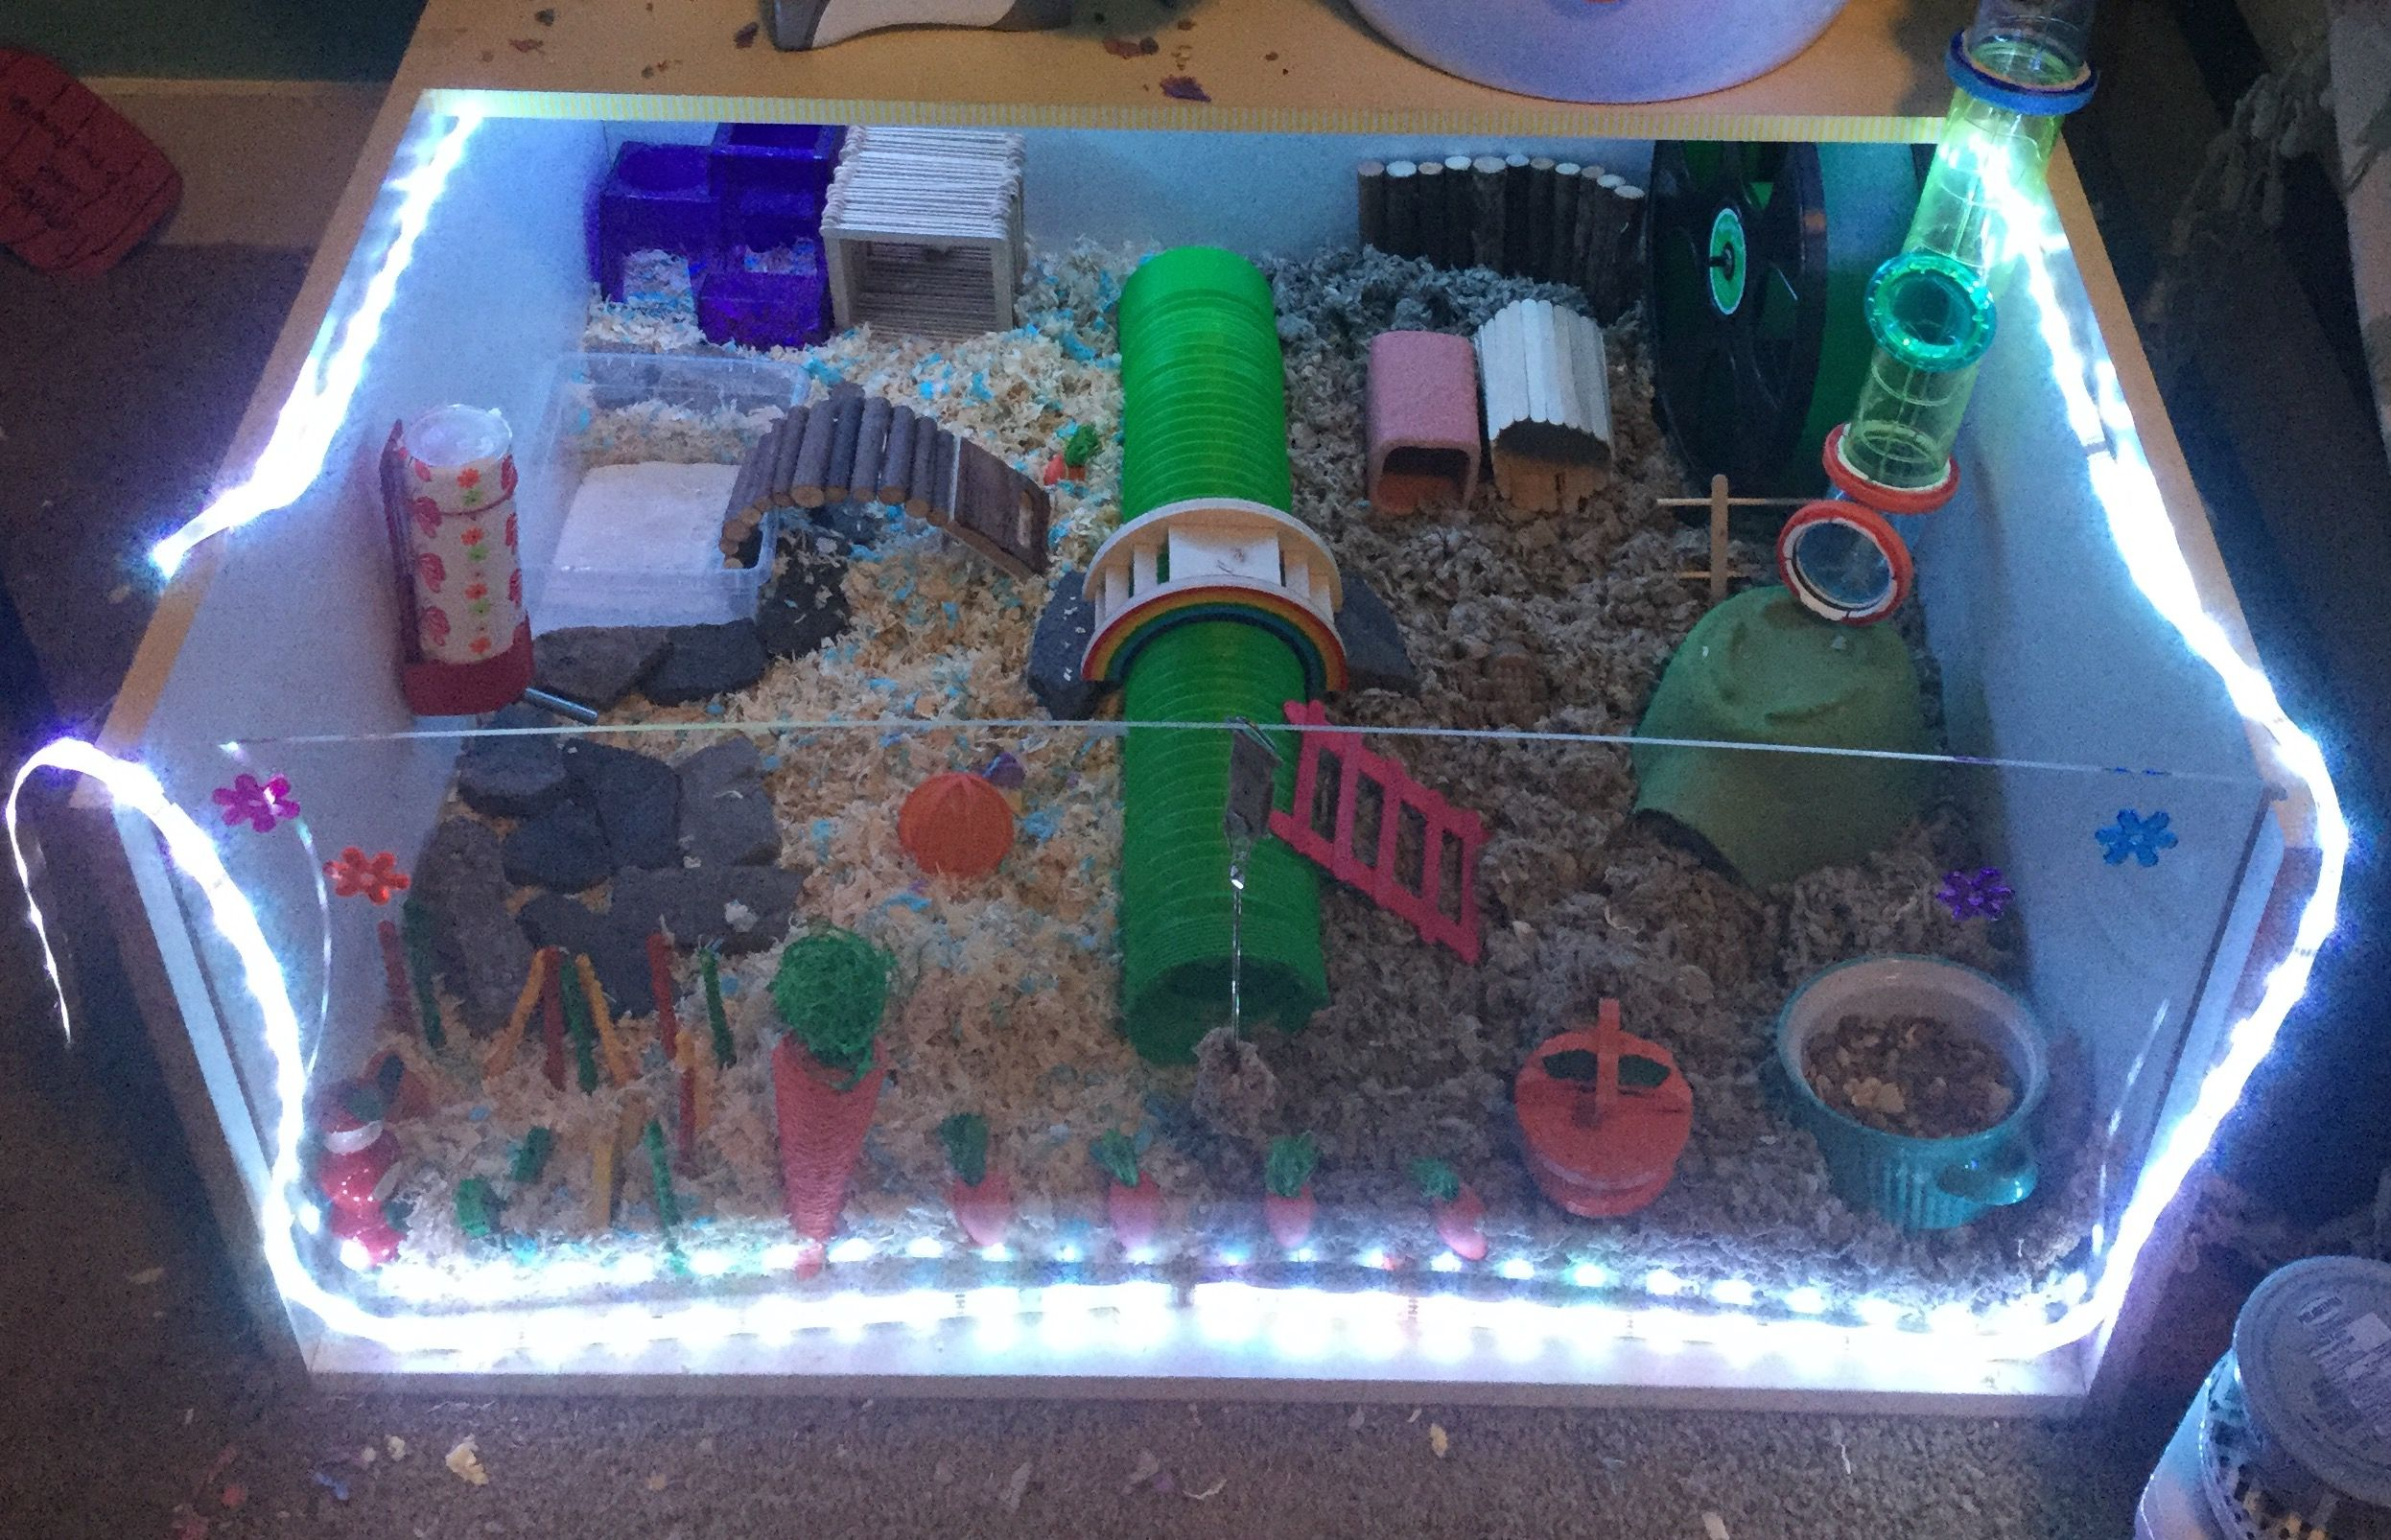 My Hamsters Diy Cage With A Half And Half Theme Hamster Diy Hamster Diy Cage Hamster Cages